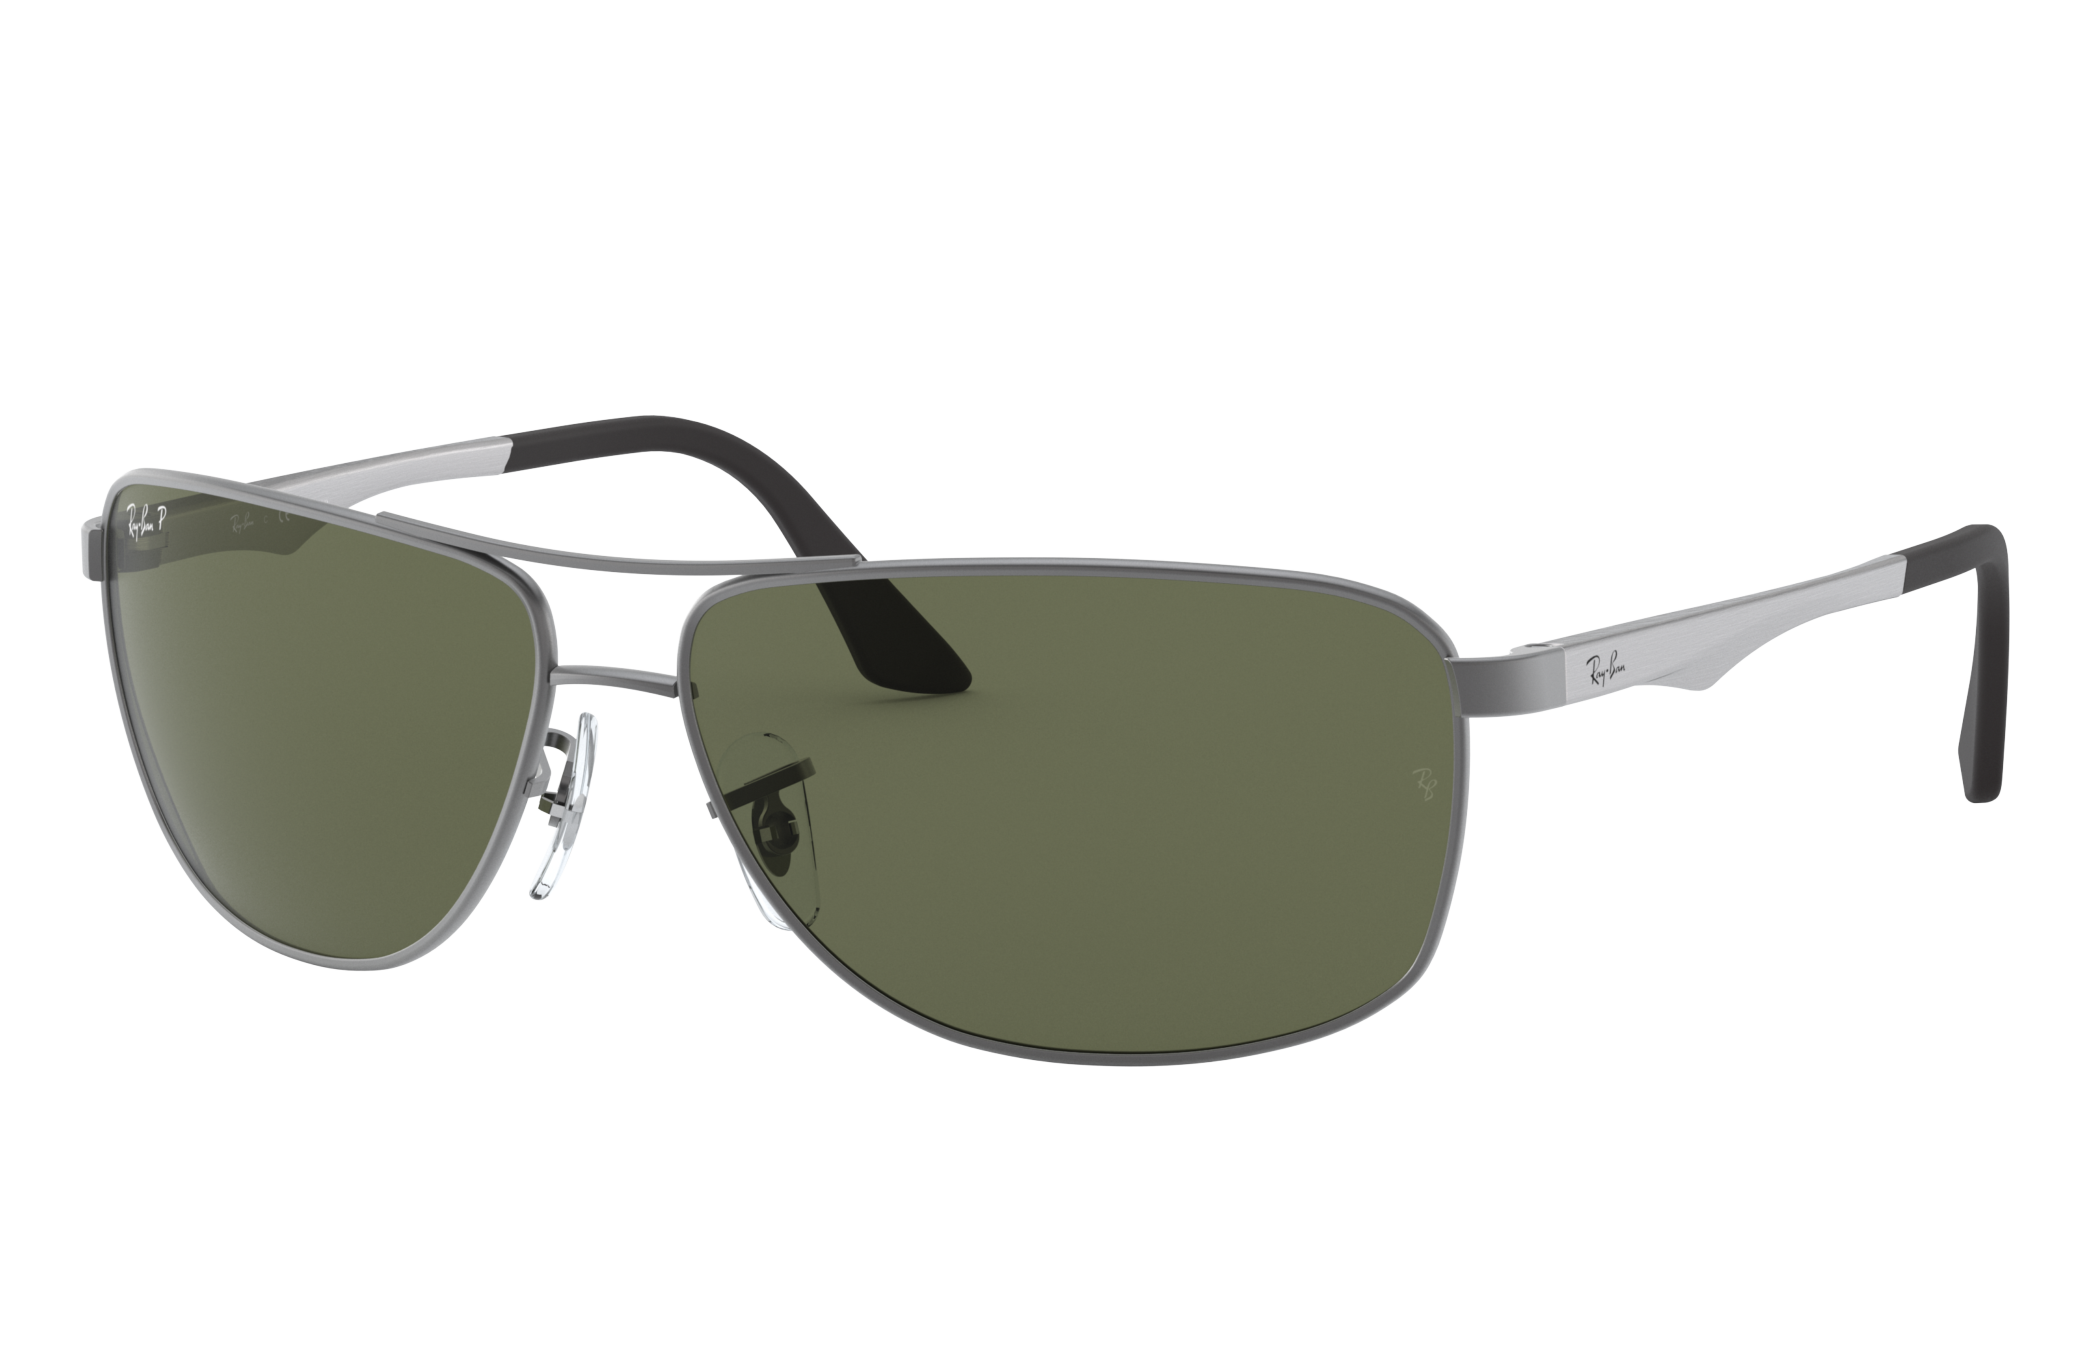 Ray-Ban Rb3506 Silver, Polarized Green Lenses - RB3506